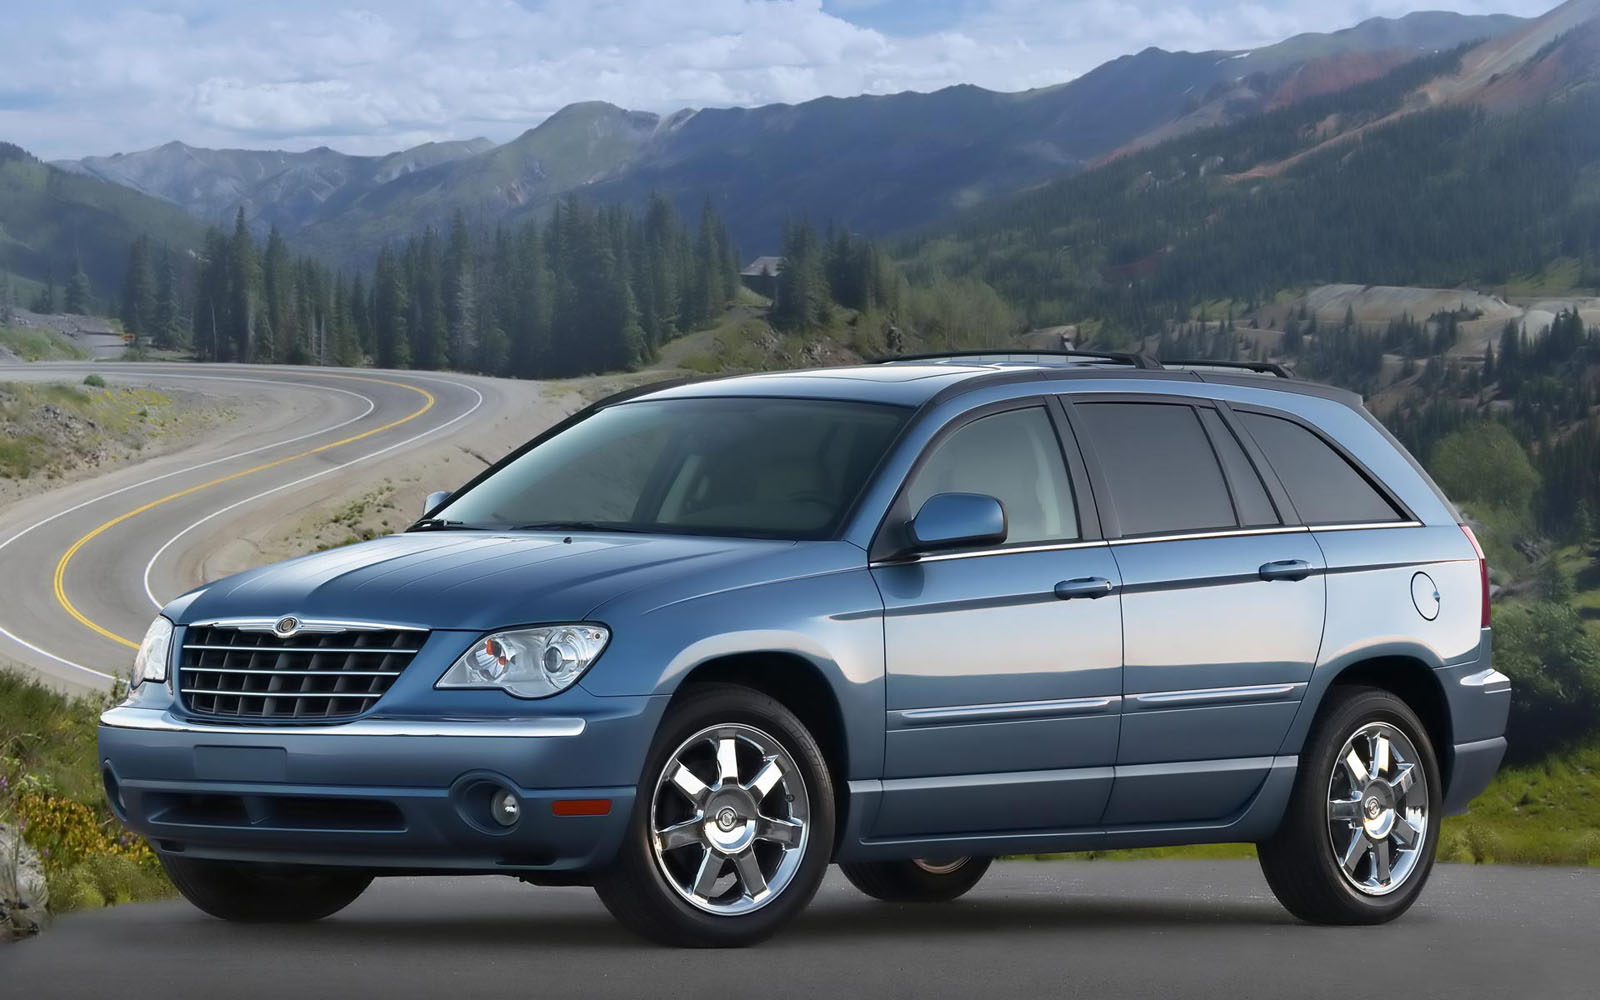 chrysler pacifica cars wallpapers. Cars Review. Best American Auto & Cars Review